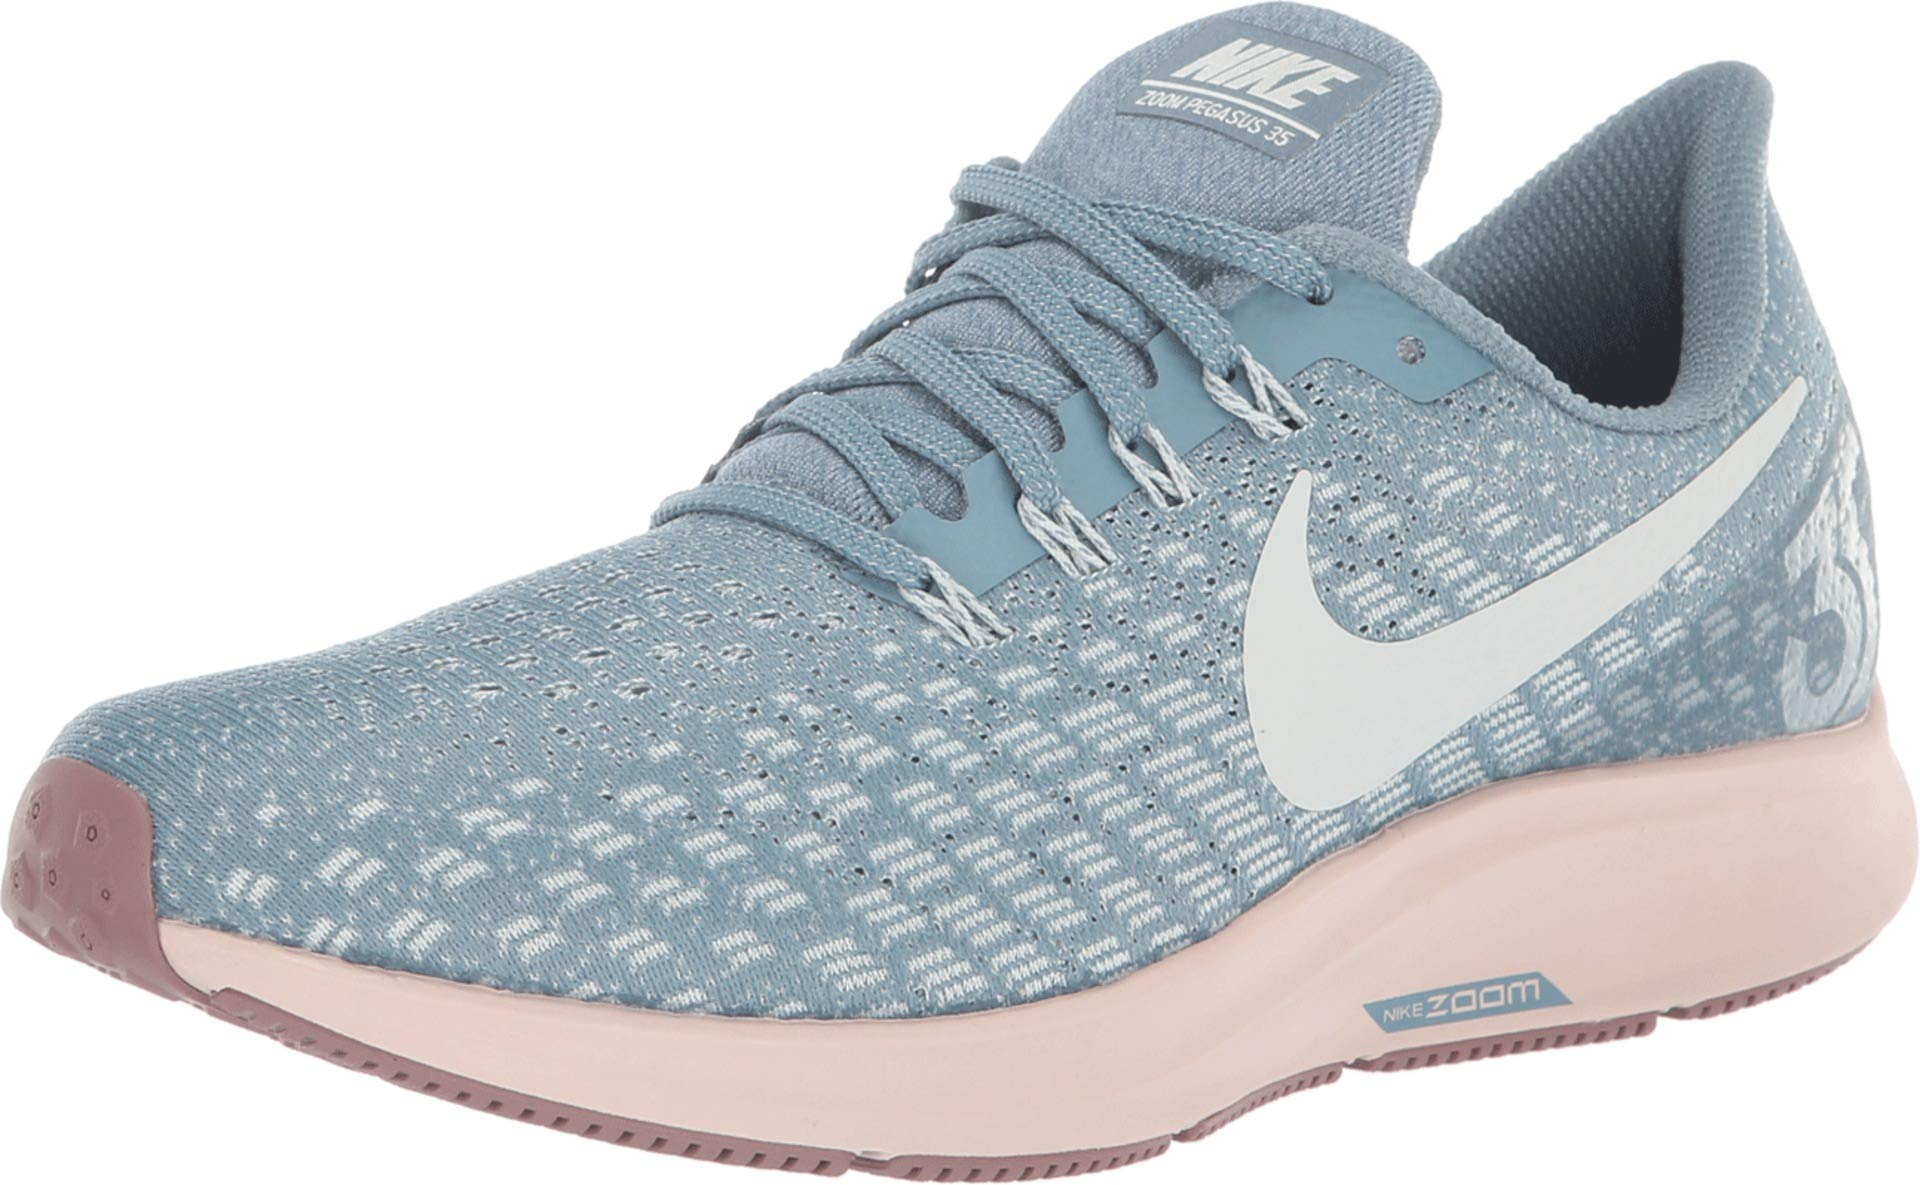 the best attitude 5cef8 99a23 Nike Women's Air Zoom Pegasus 35 Running Shoe Blue/Celestial Teal/Light  Silver (US 9)